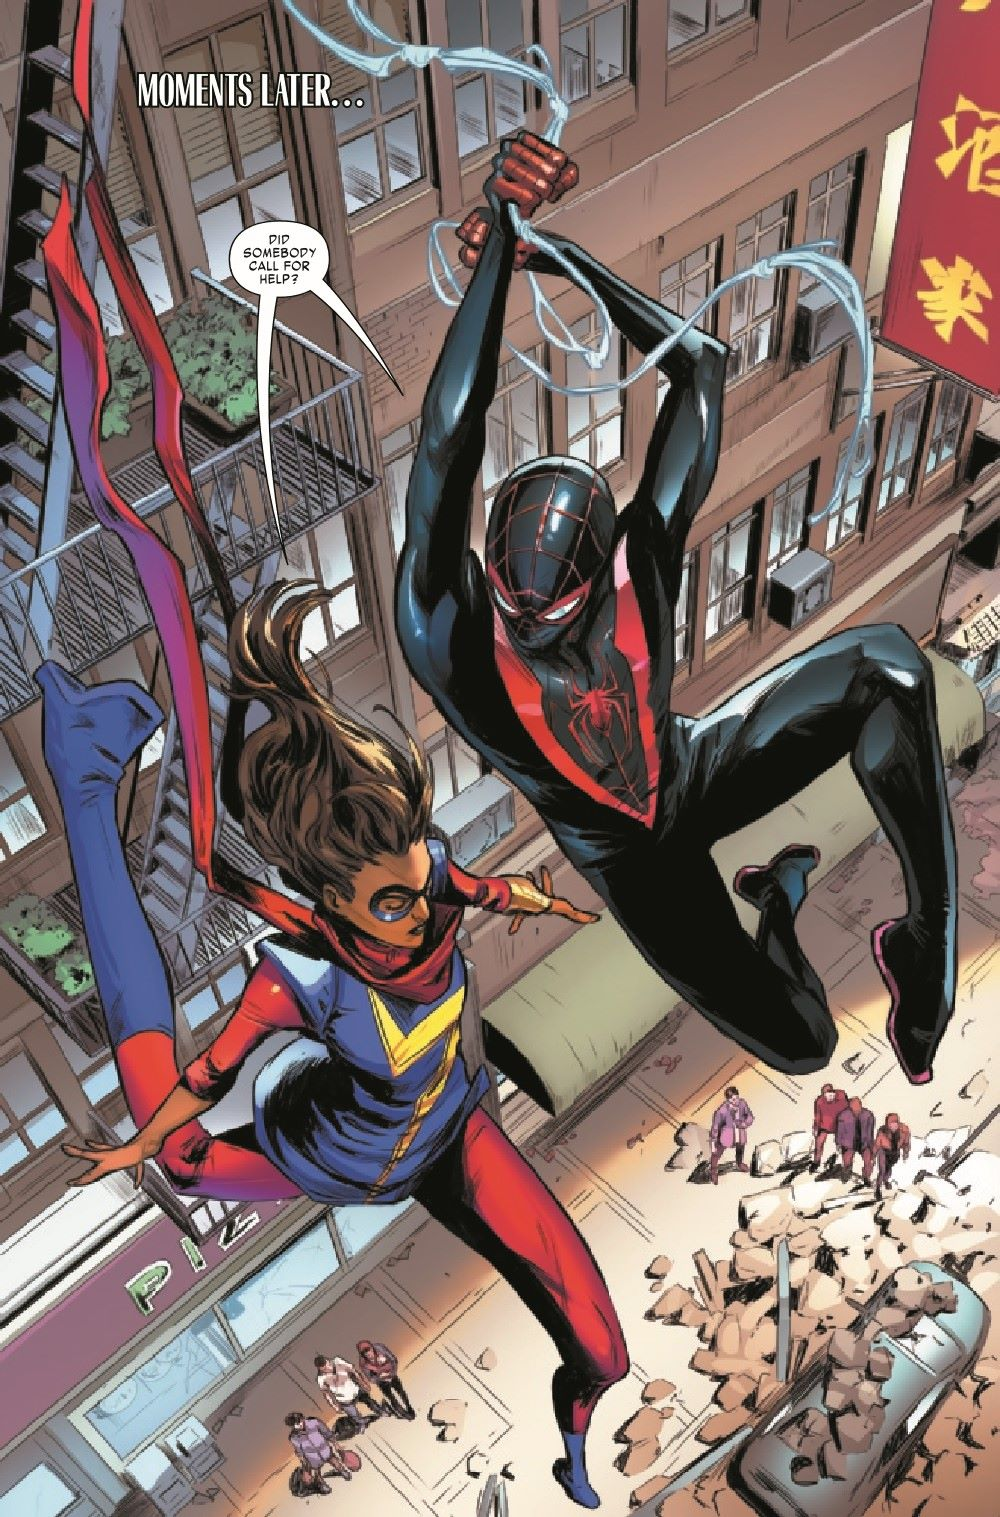 MMSM2018024_Preview-6 ComicList Previews: MILES MORALES SPIDER-MAN #24